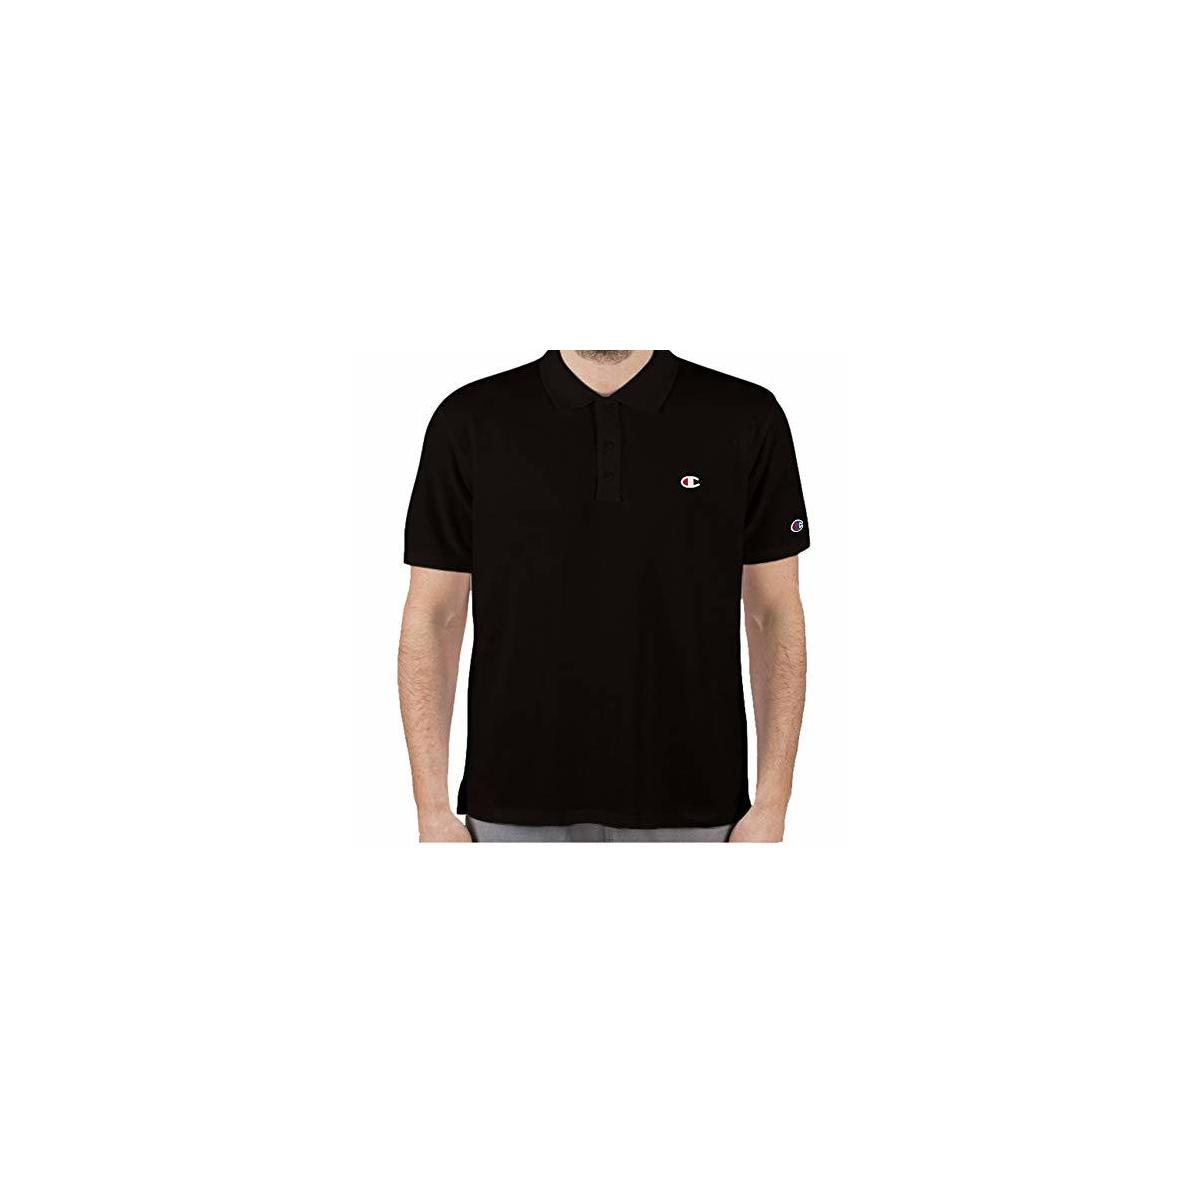 REBATE ONLY FOR: BLACK ,SIZE: 3X----Champion Mens Big and Tall Shirts for Men Short Sleeve Pique Polo Shirt